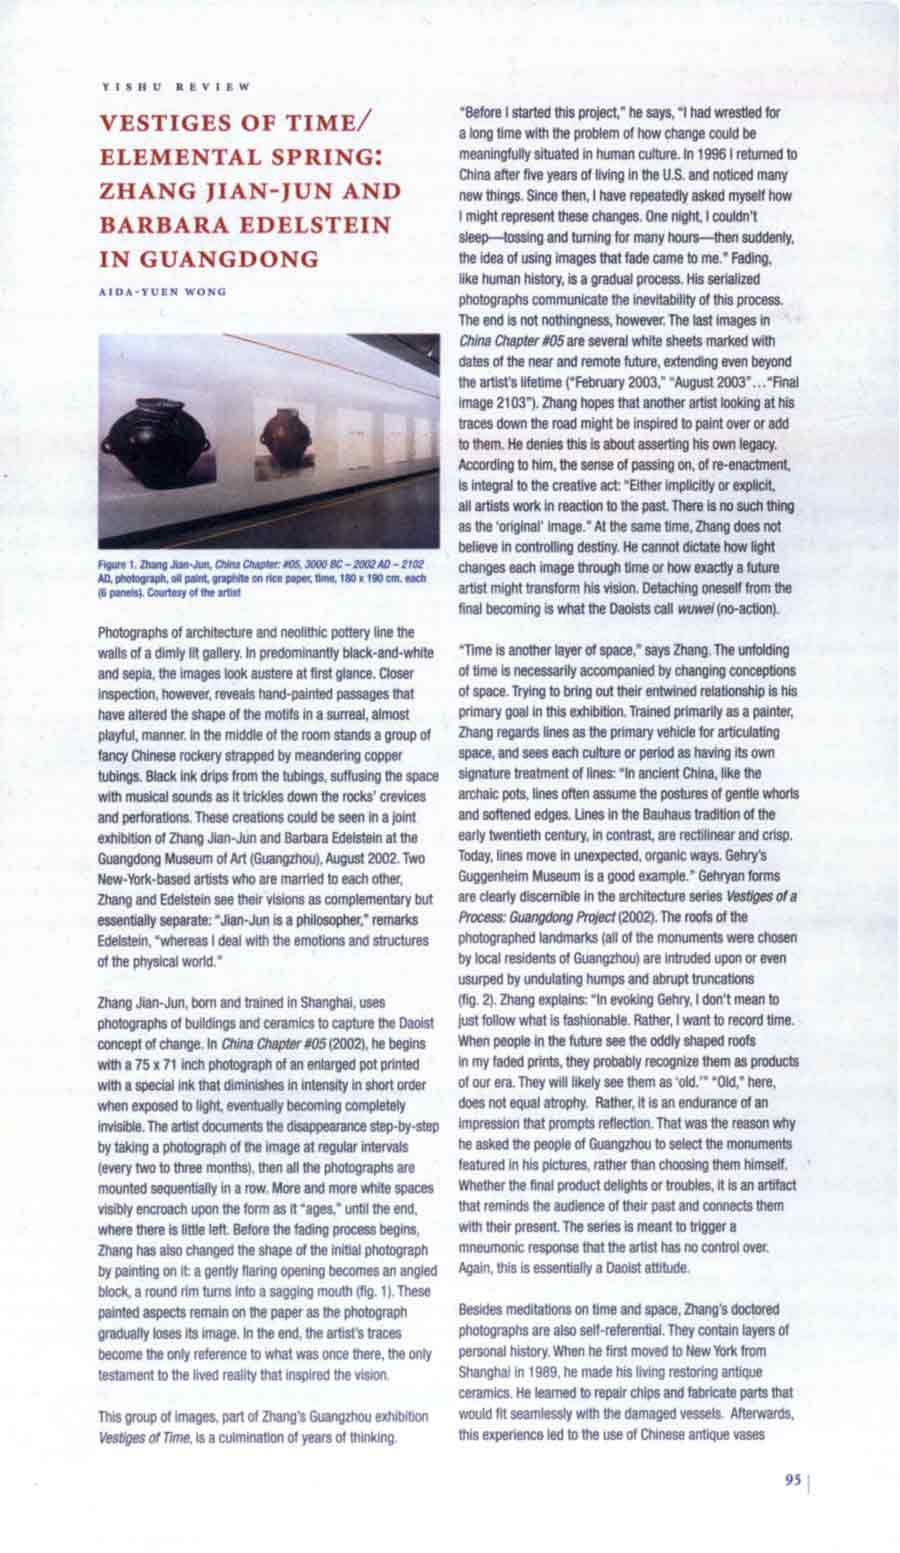 Vestiges of Time / Elemental Spring: Zhang Jian-Jun and Barbara Edelstein in Guangdong, review, pg 1